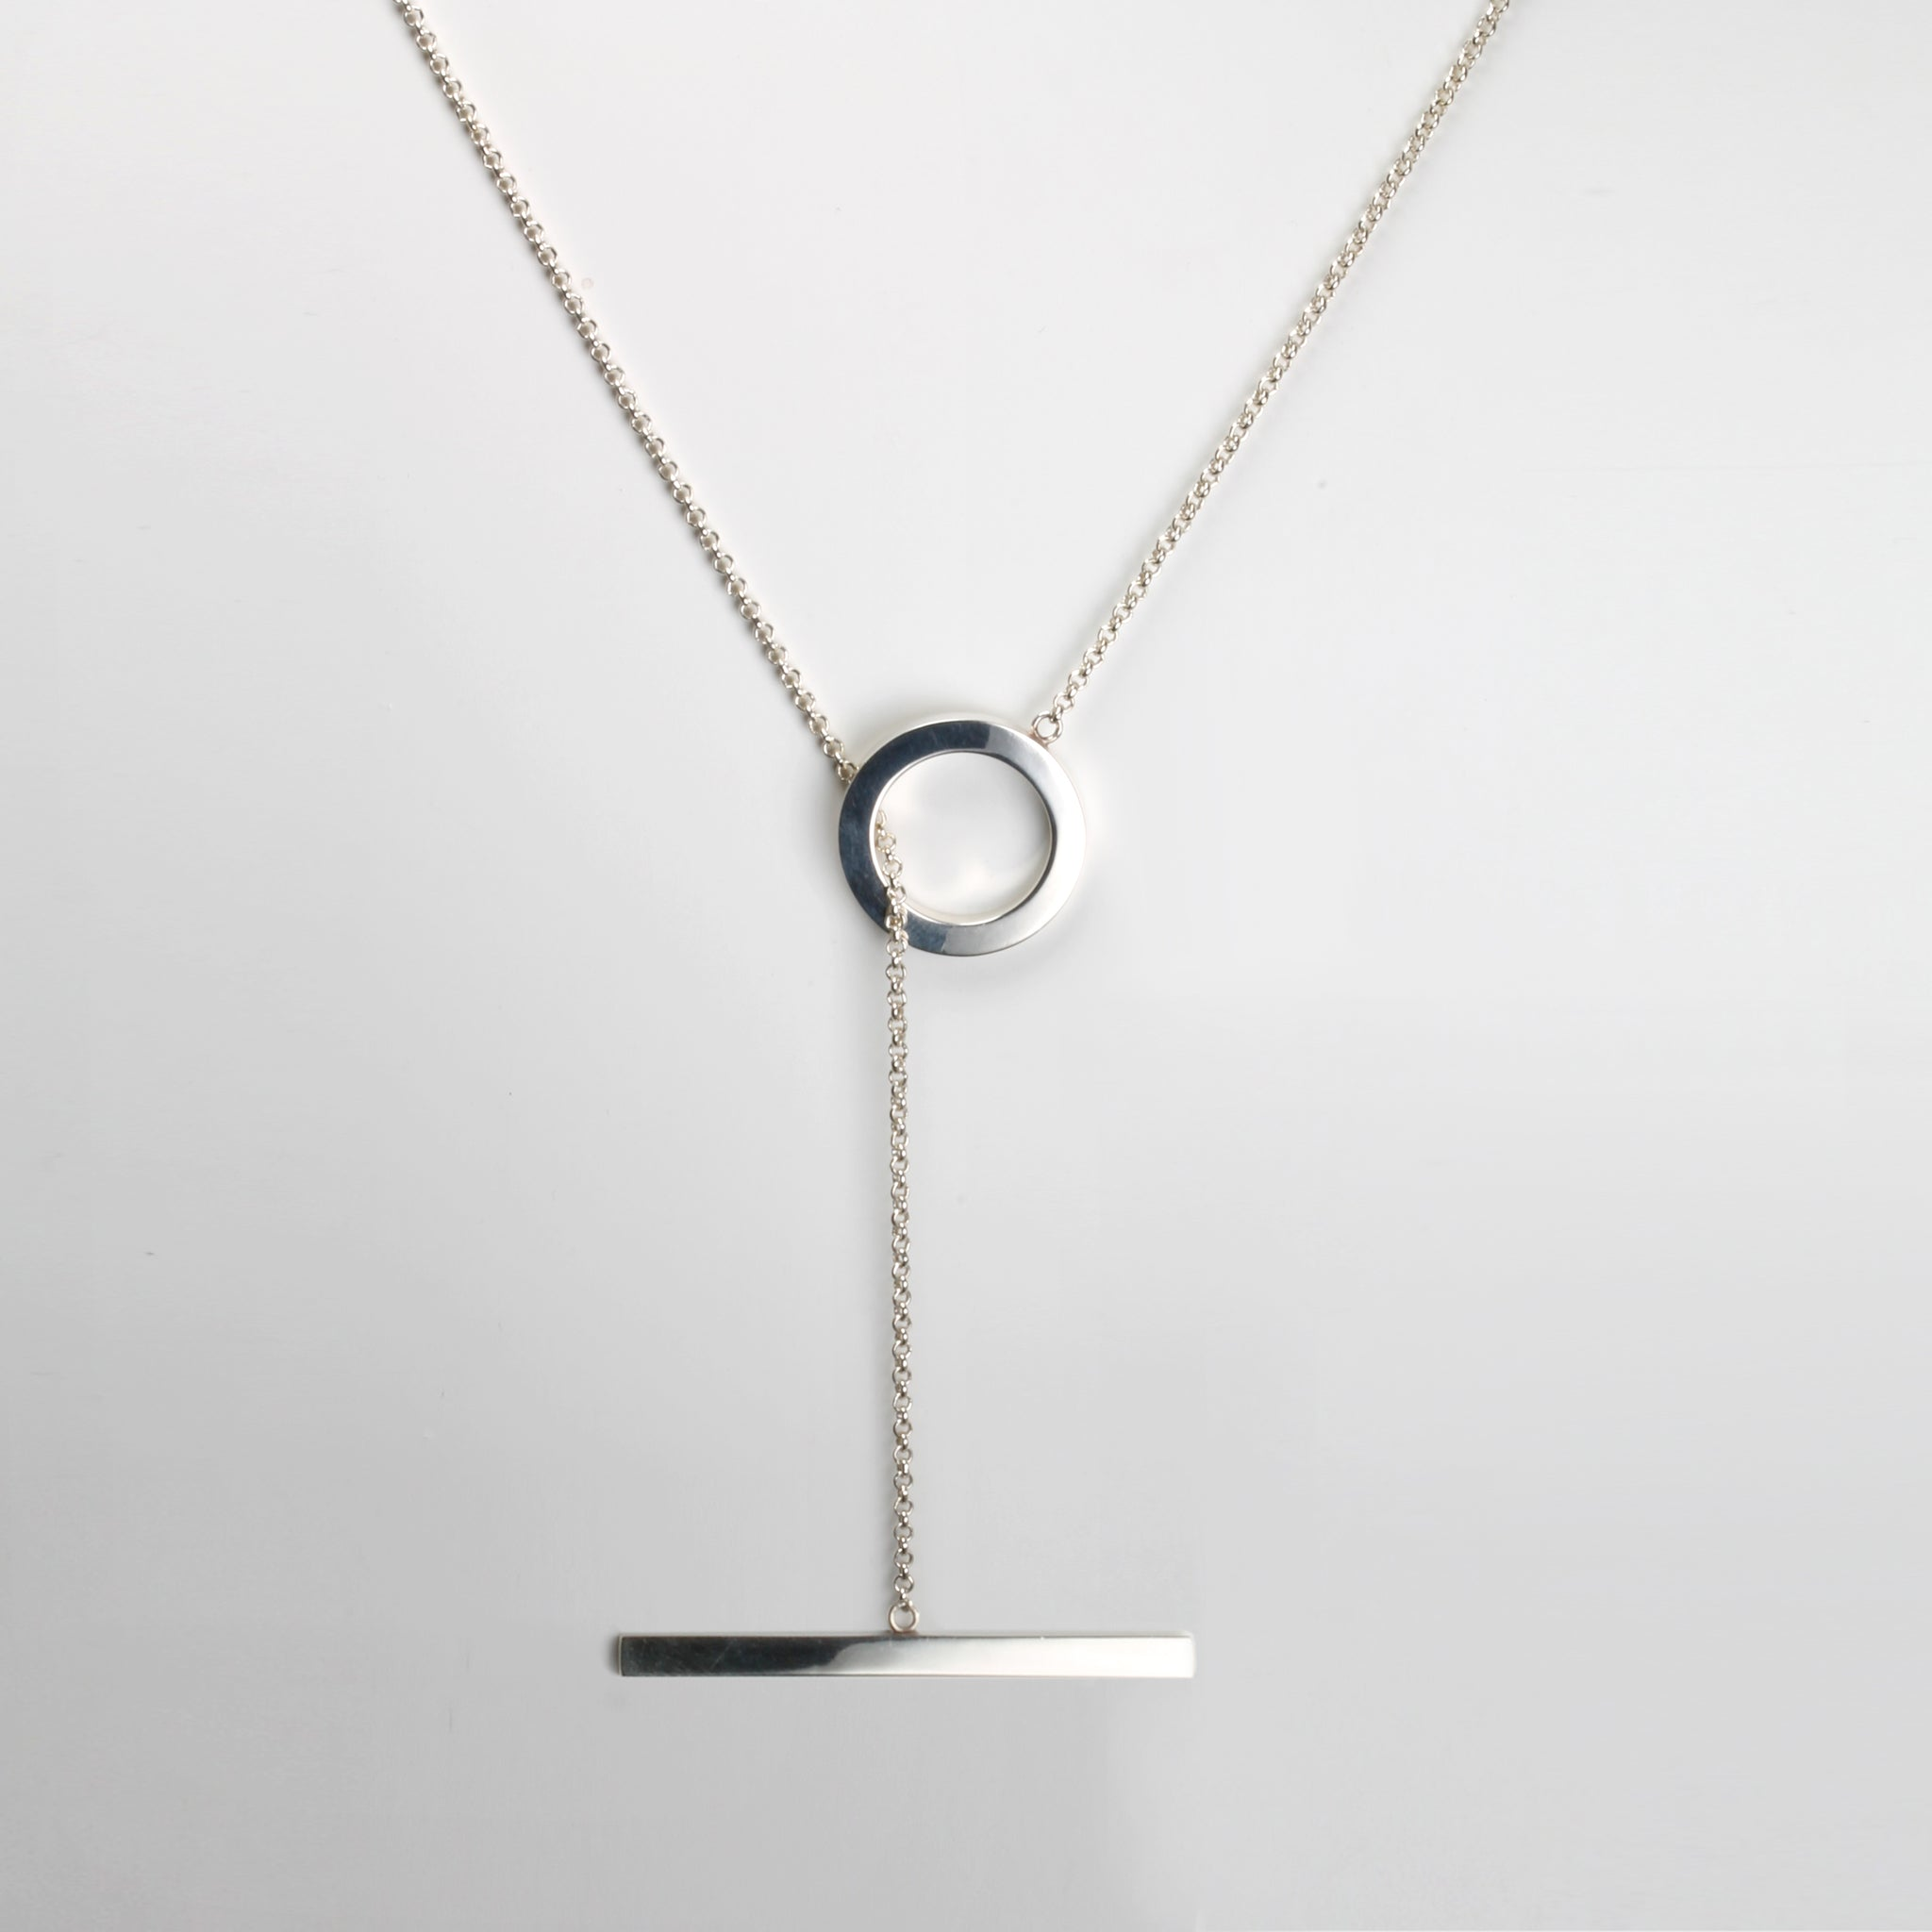 GEOMETRIC necklace round